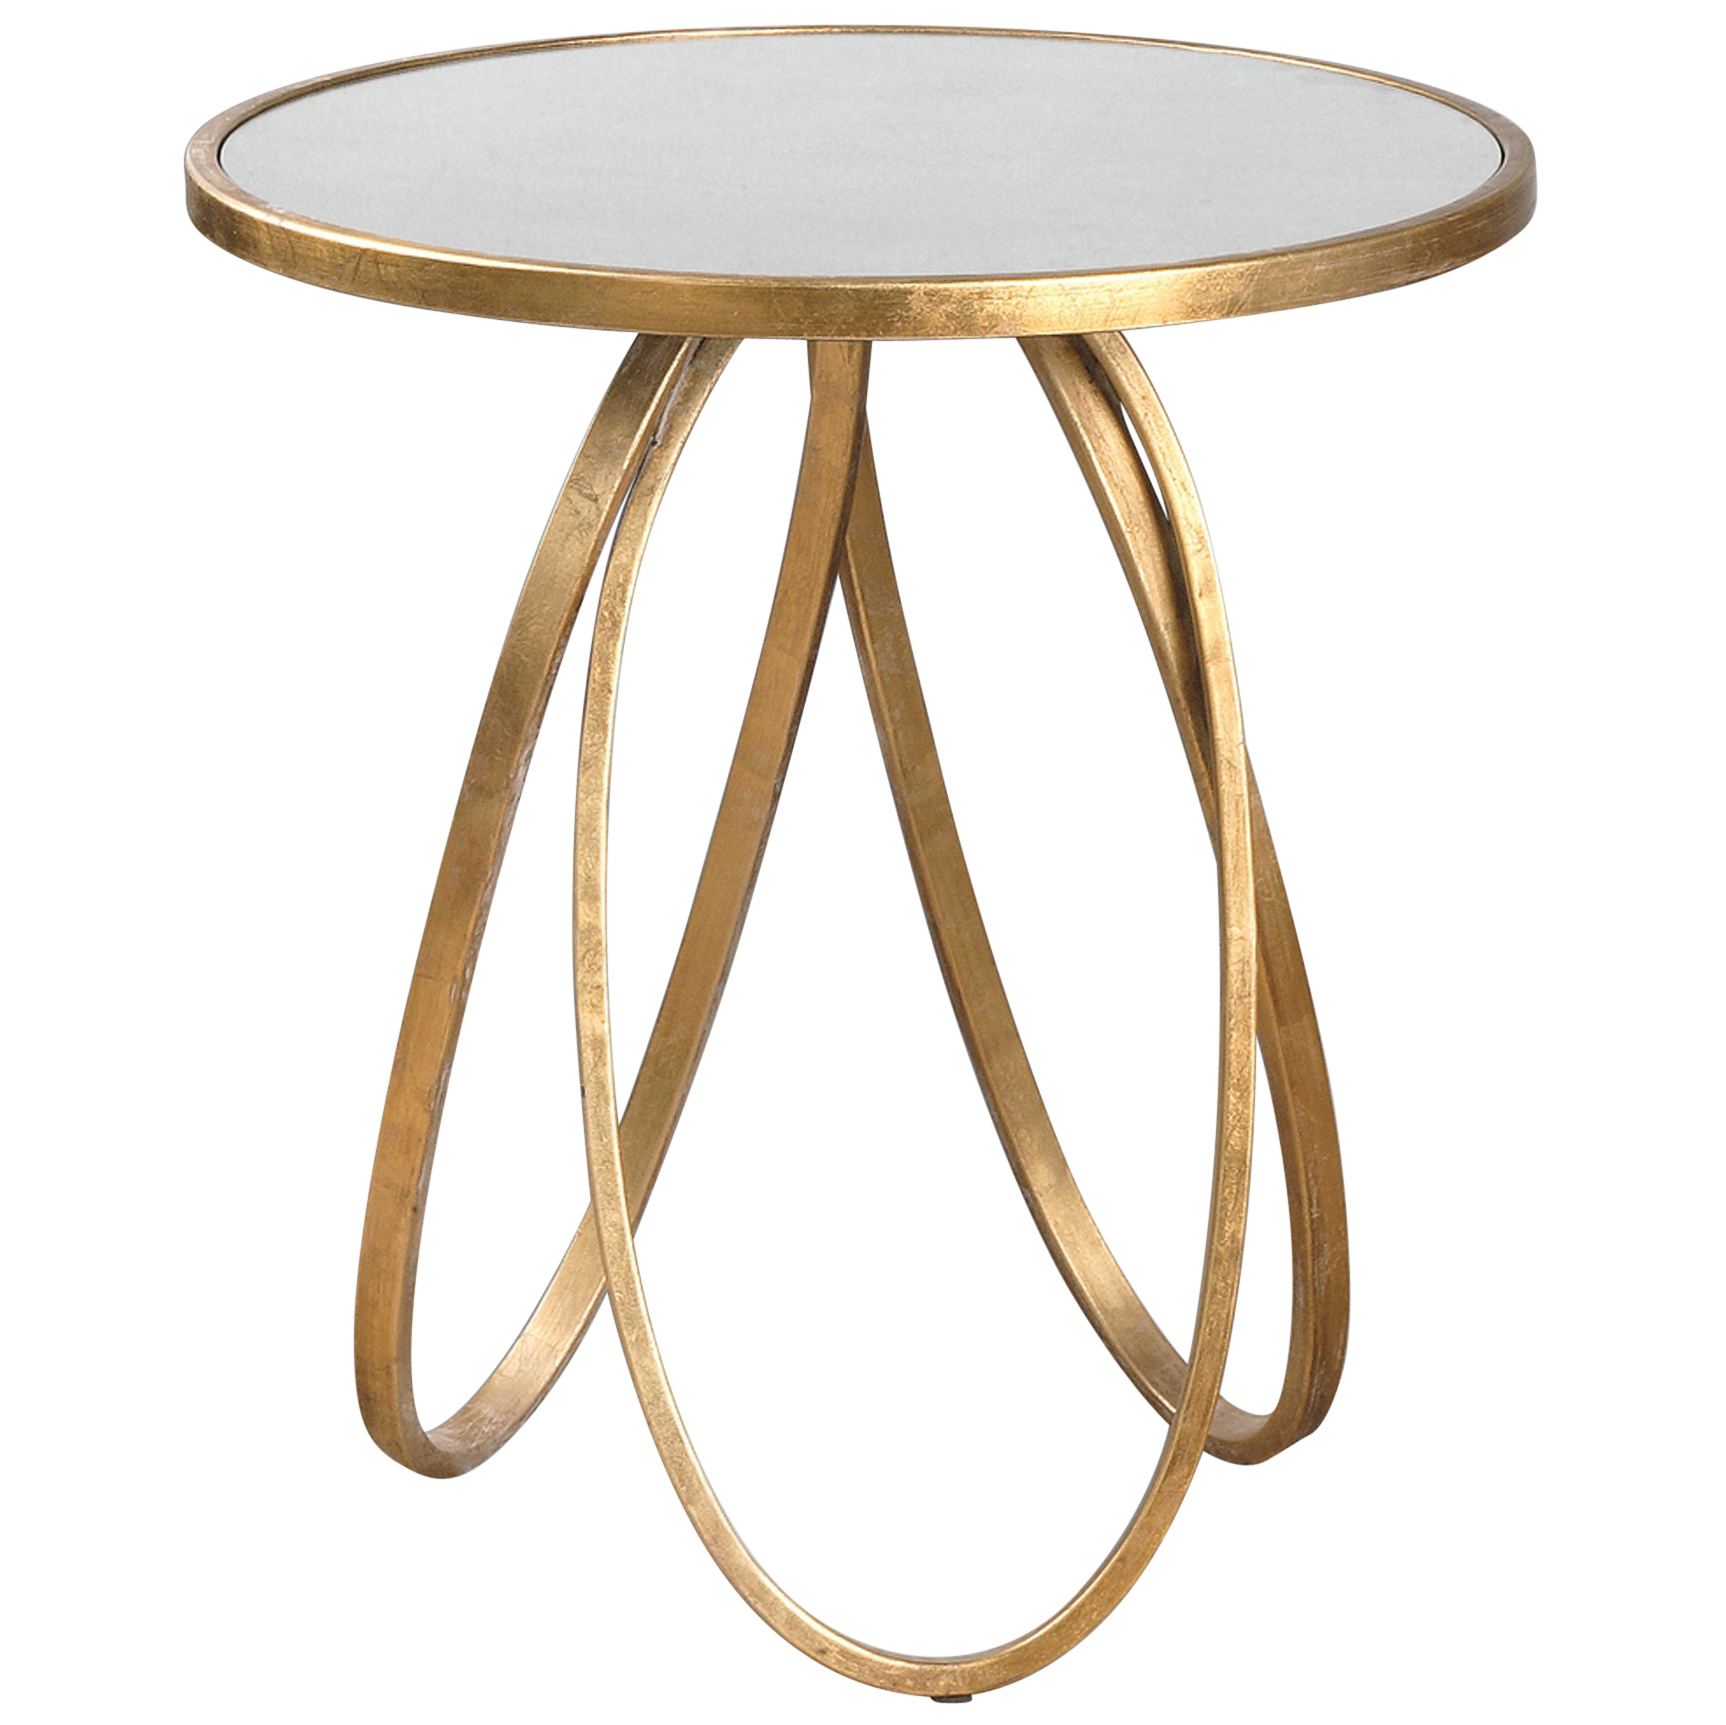 product 12160 Top Result 50 Best Of Gold and Glass Coffee Table Image 2017 Ksh4